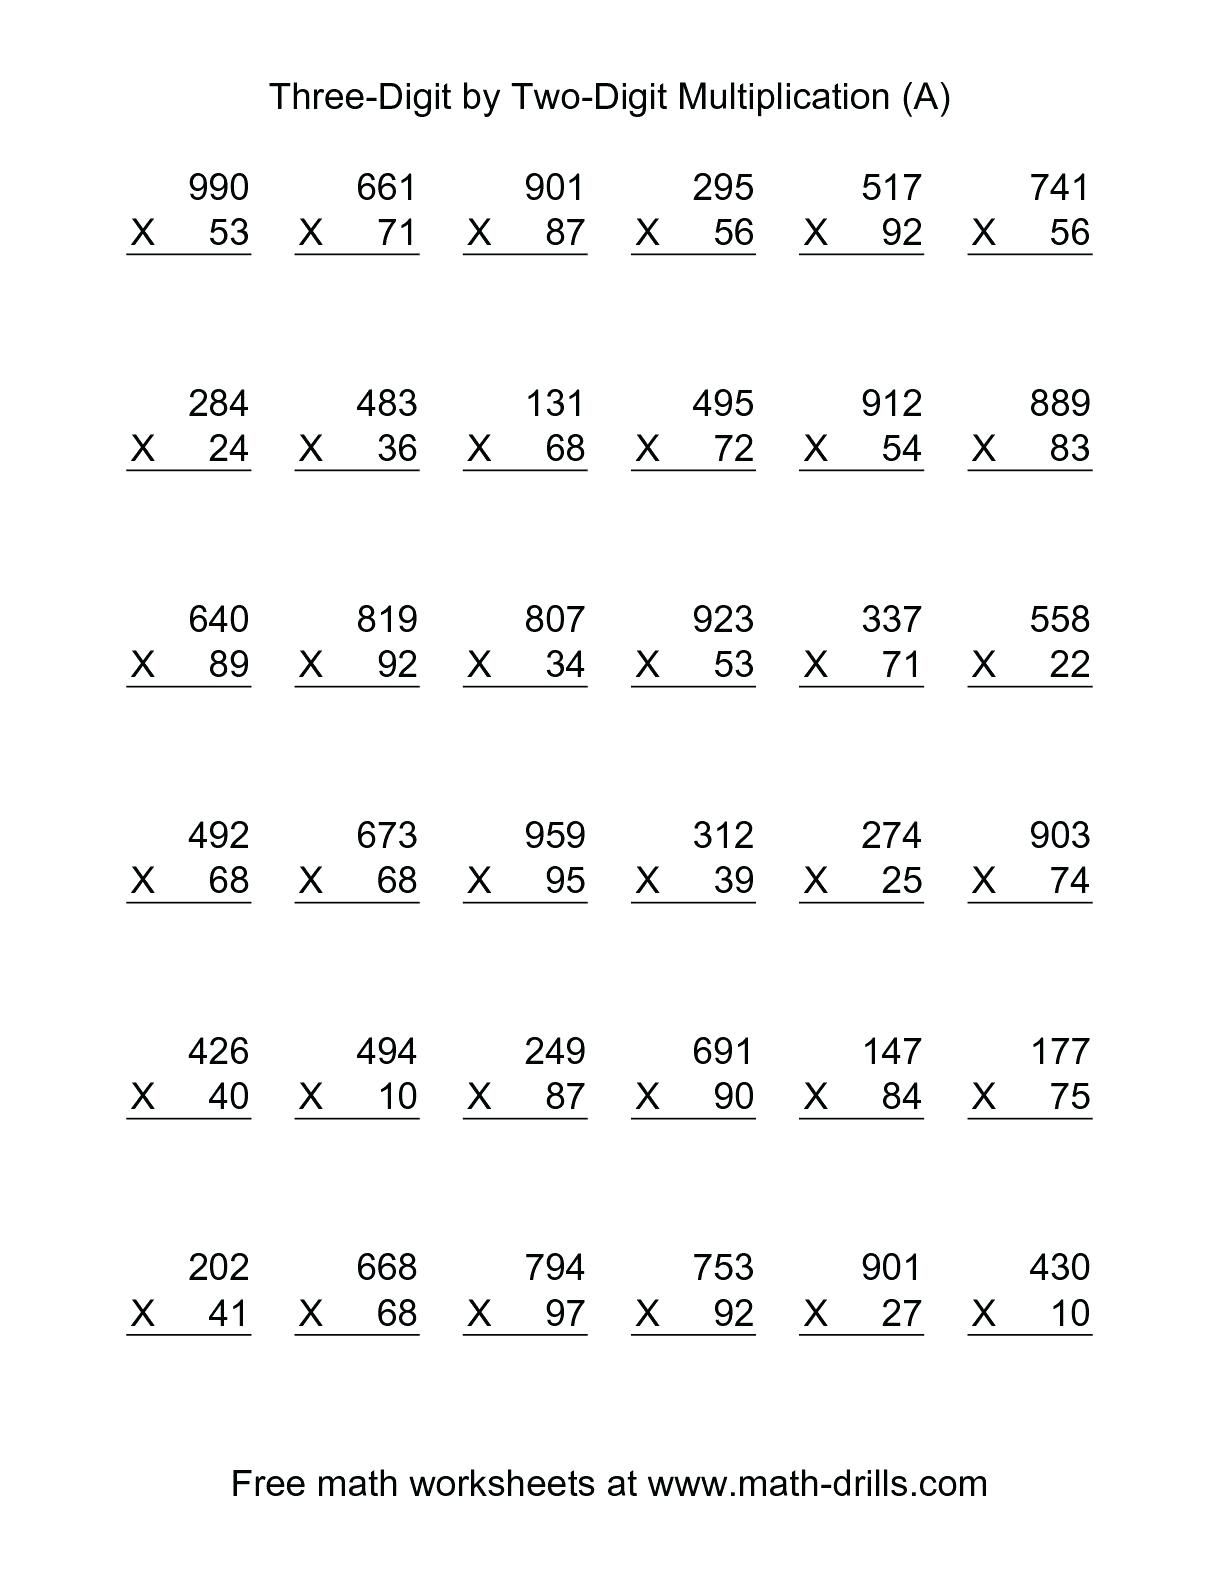 5th Grade Multiplication Worksheets For Printable Multiplication Worksheets Math Fact Worksheets Printable Multiplication Worksheets